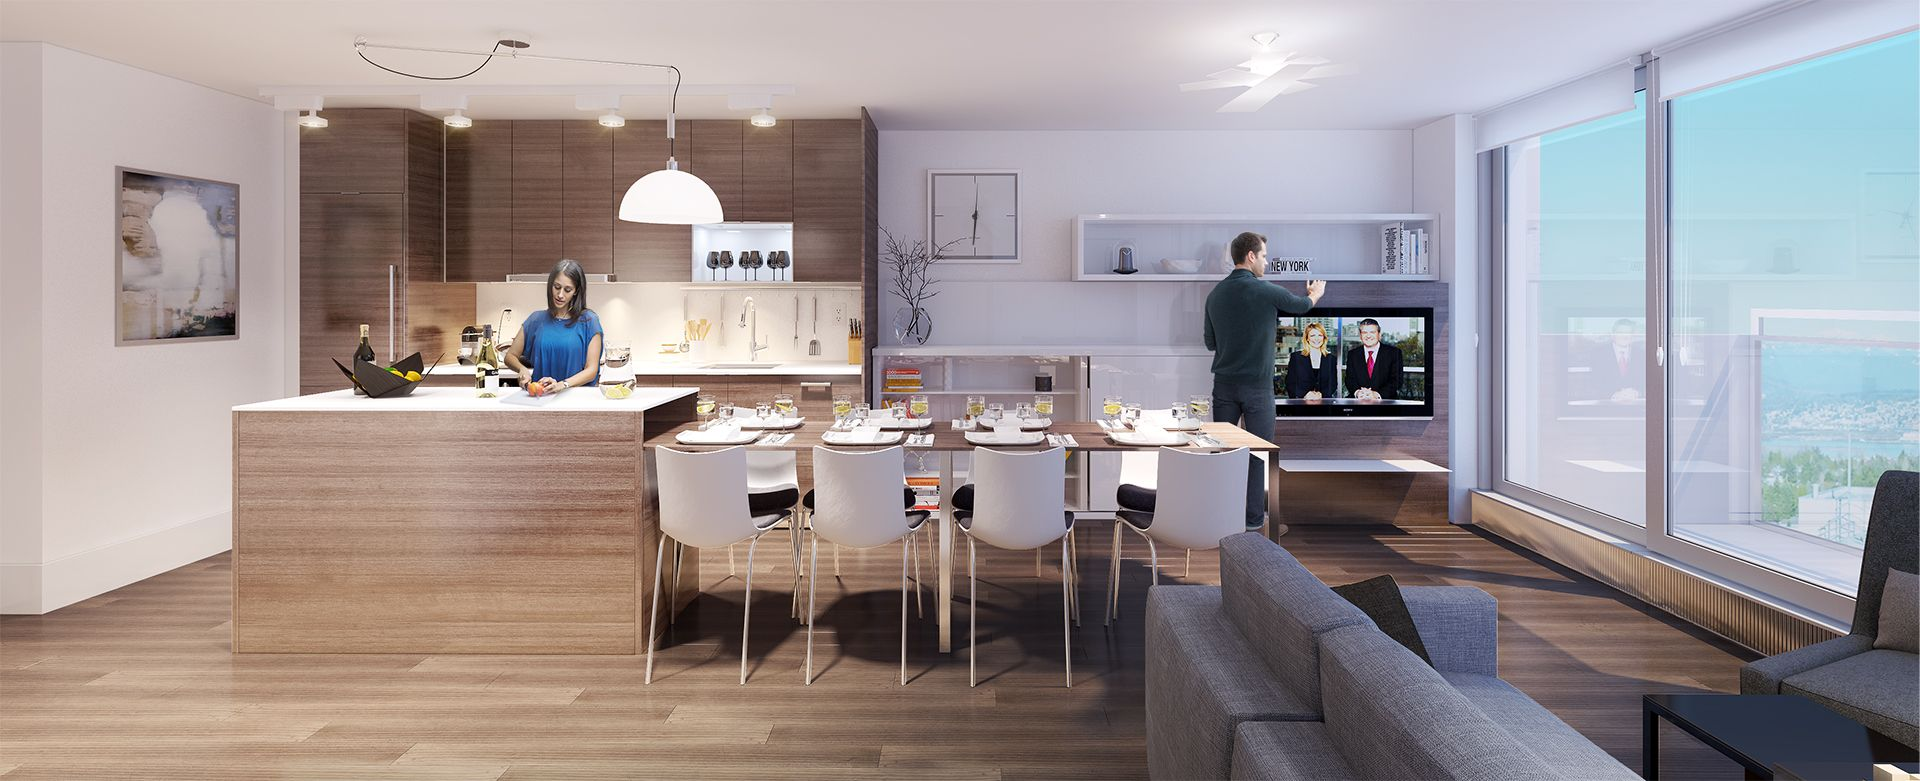 The same modest kitchen-diner can then expand vastly to ...